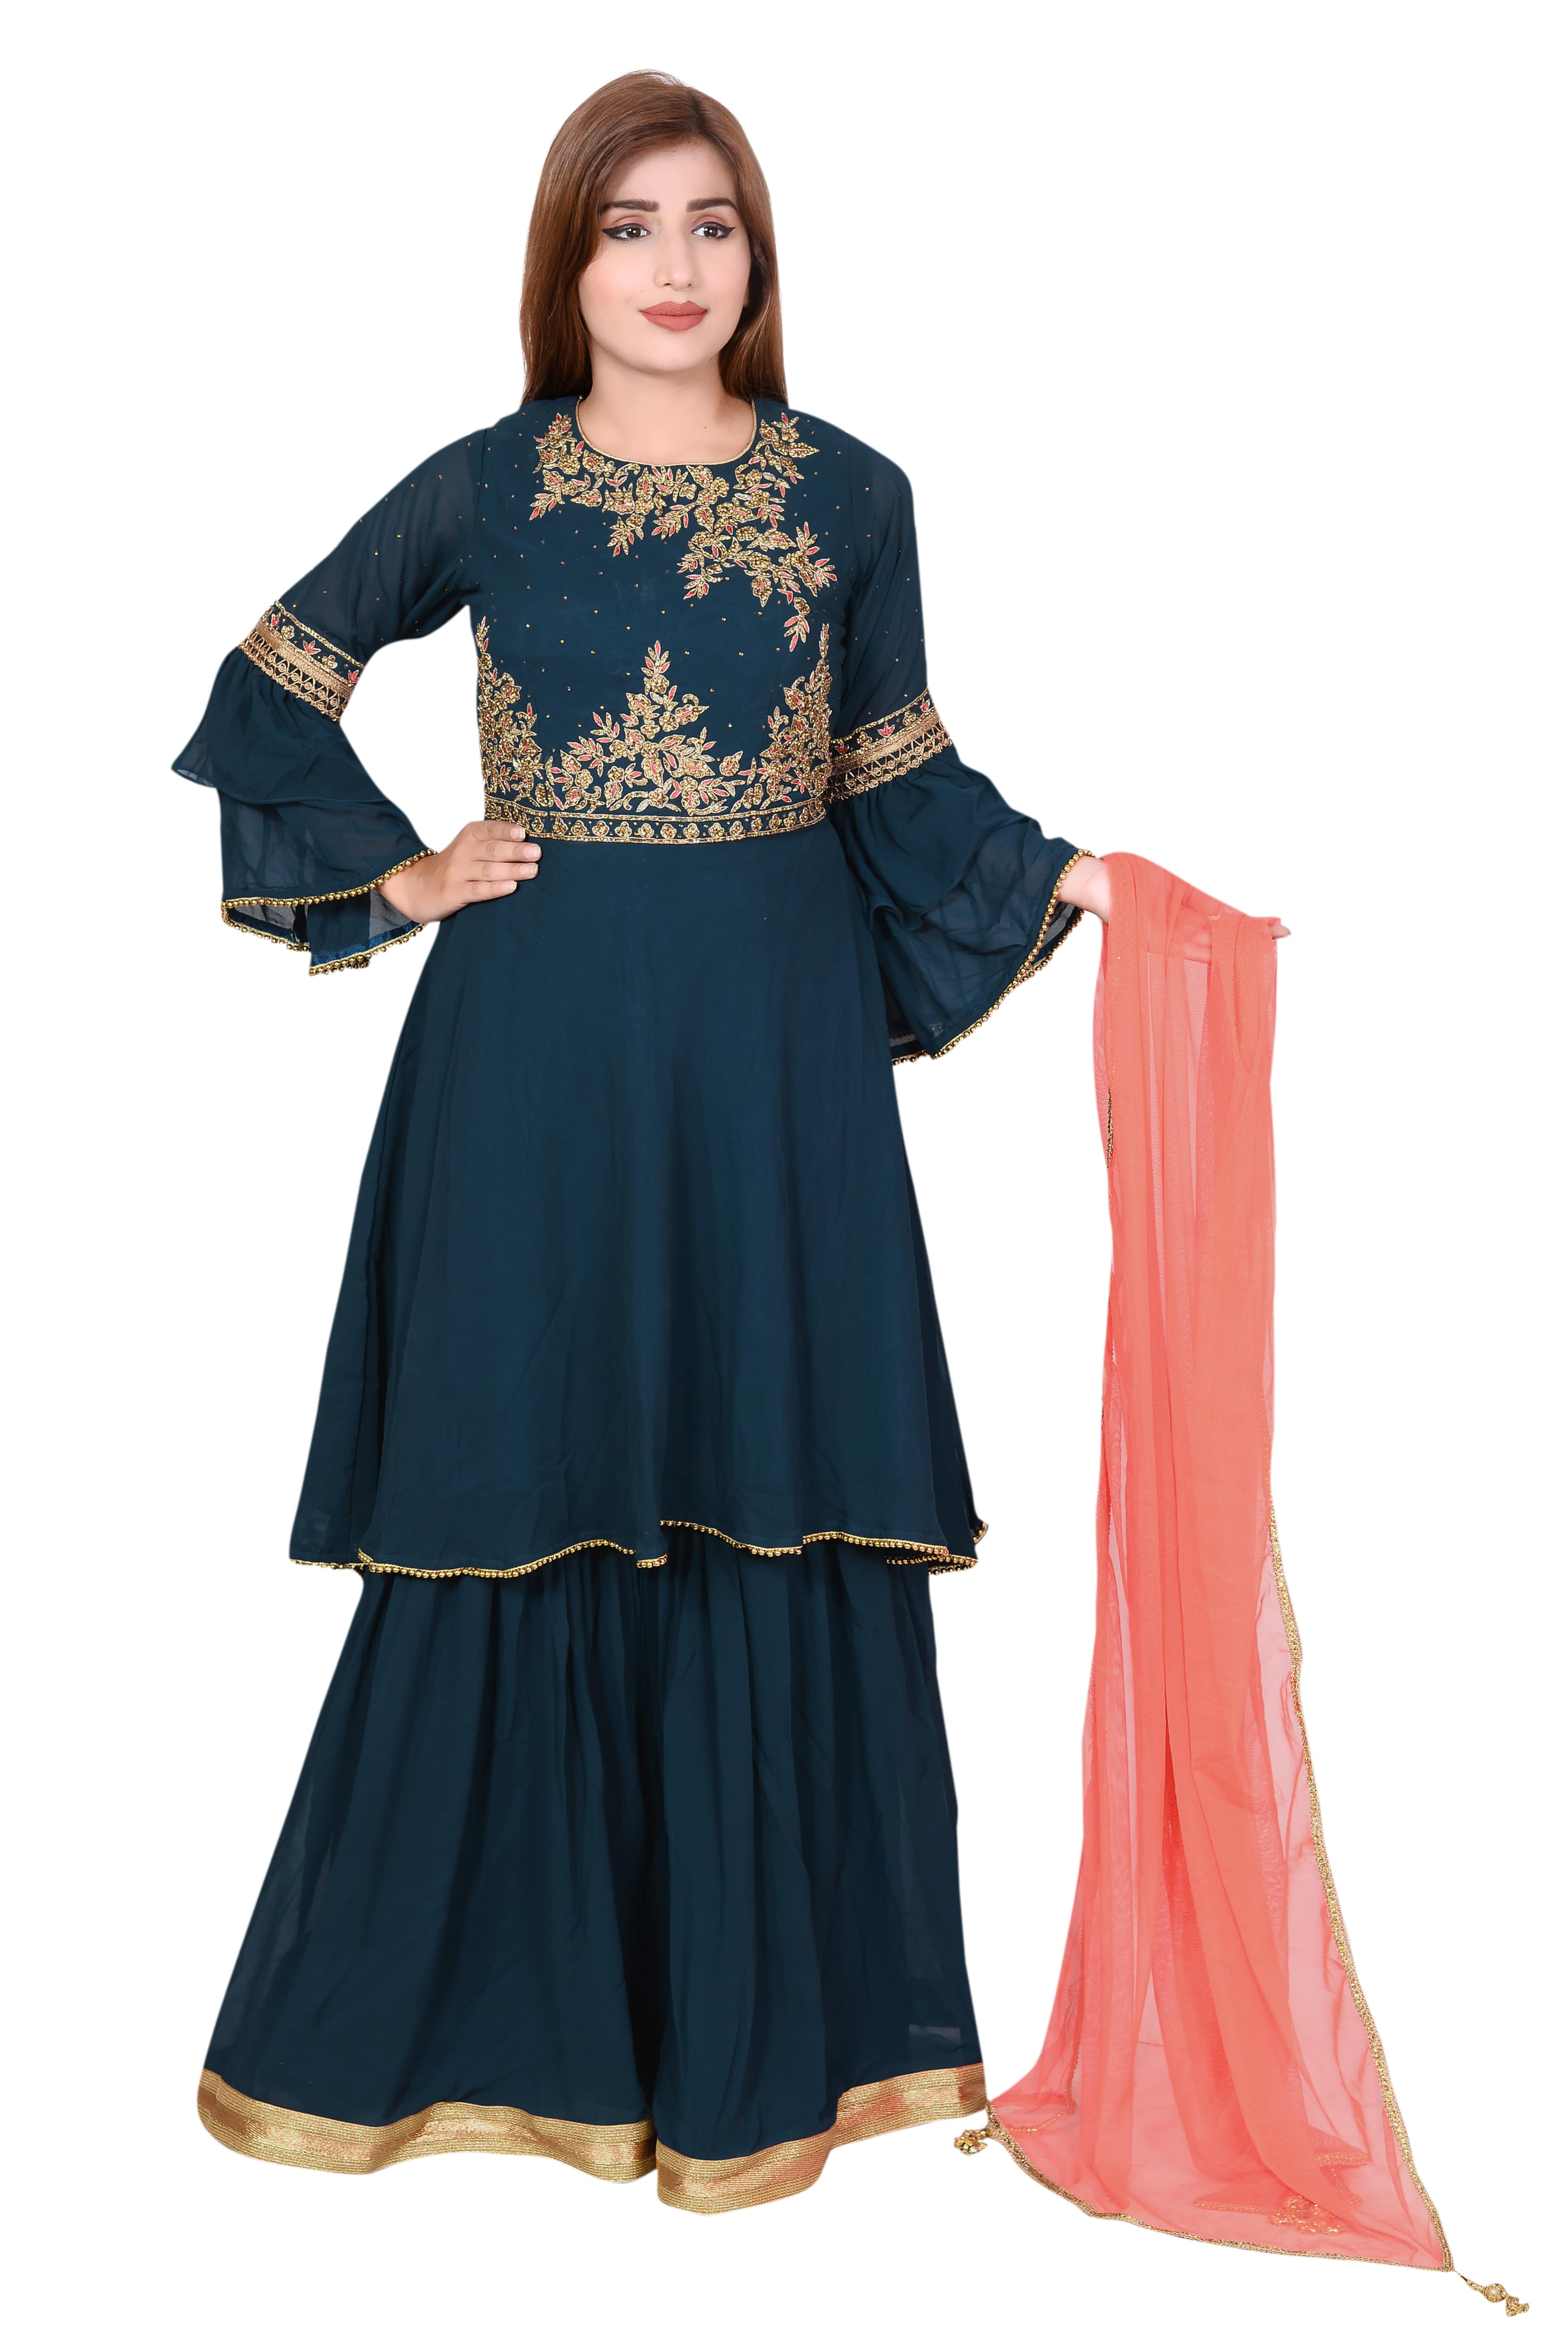 Ladies Ethnic Wear In Guwahati